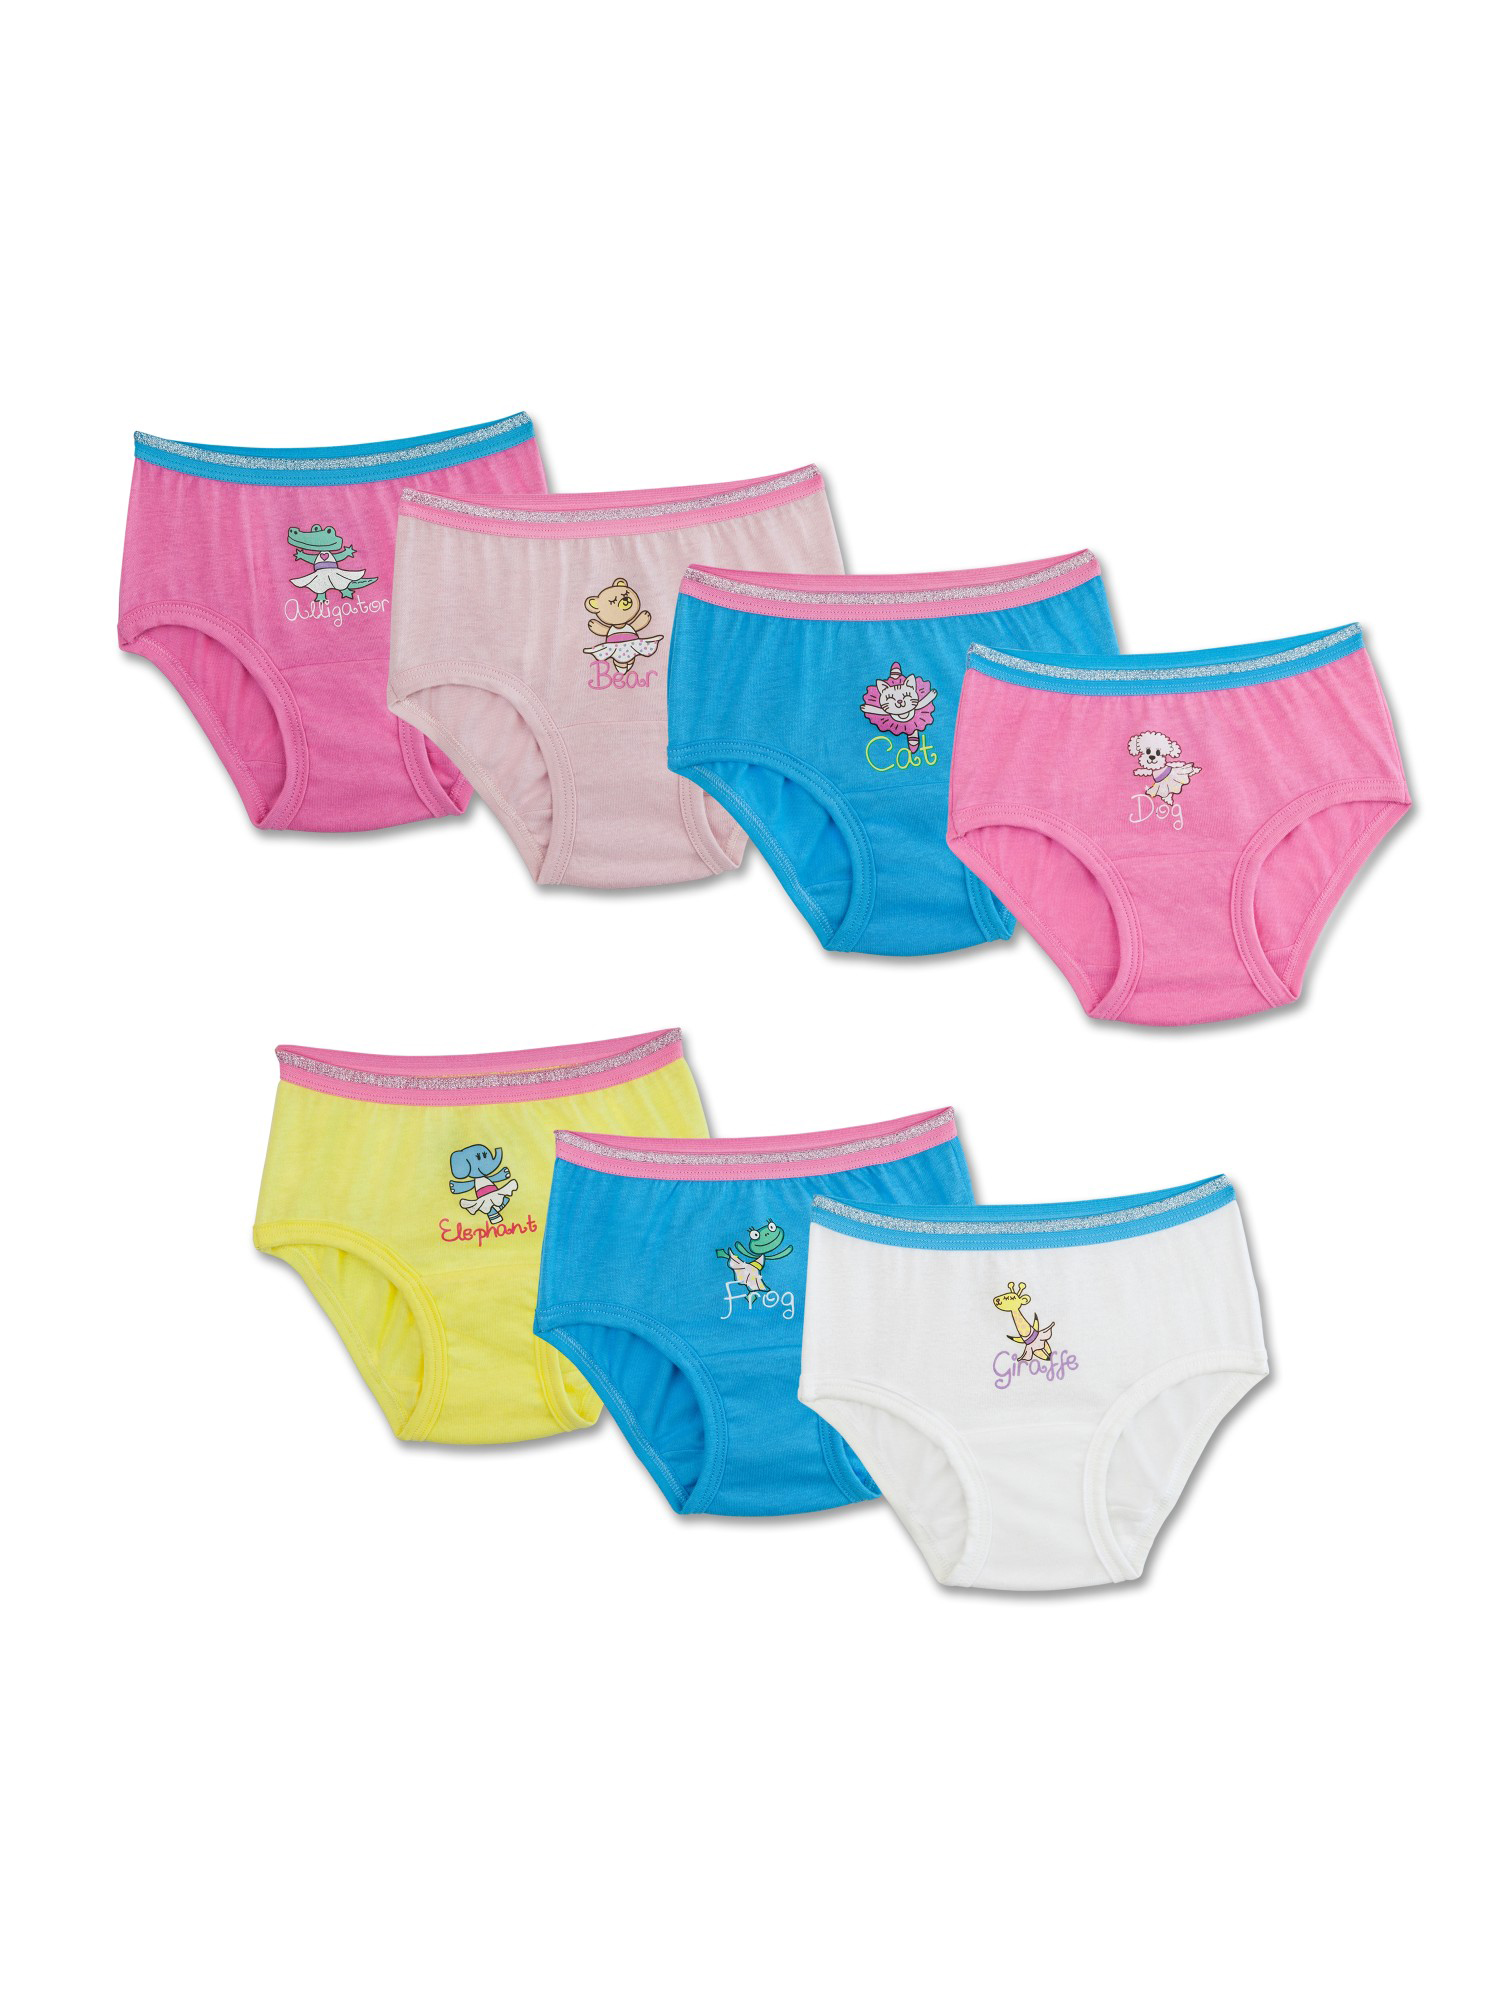 Theme Pack Briefs, 7 Pack (Toddler Girl)